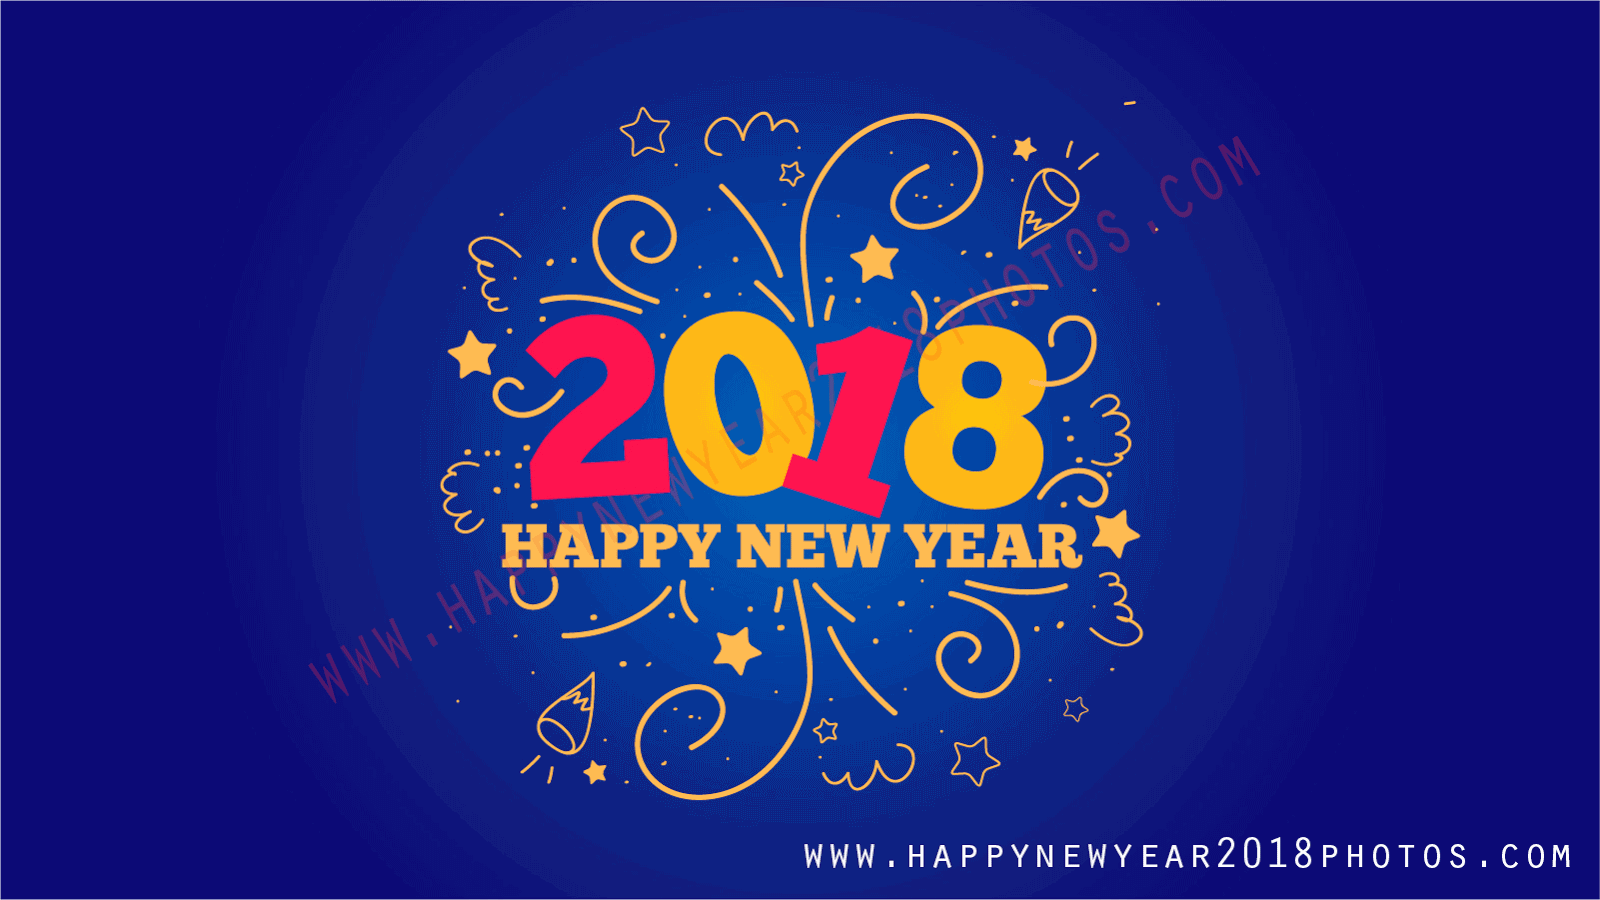 New Year 2018 Cards Wishes Image Picture Photo Wallpaper Greetings 02